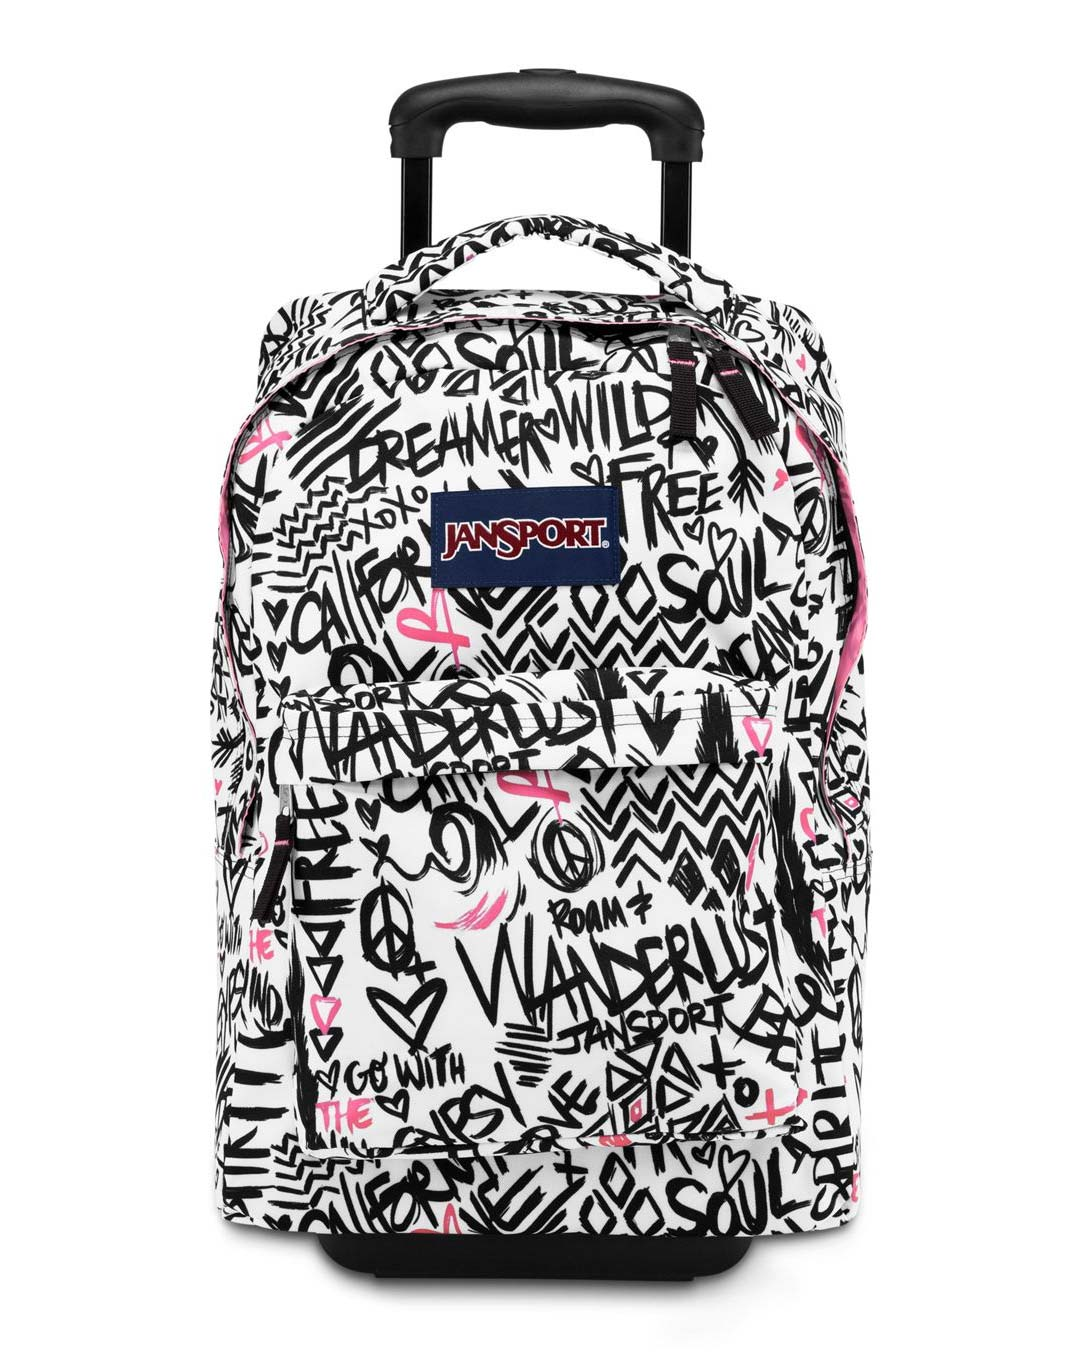 Girls Rolling Backpacks cLfjYn1P